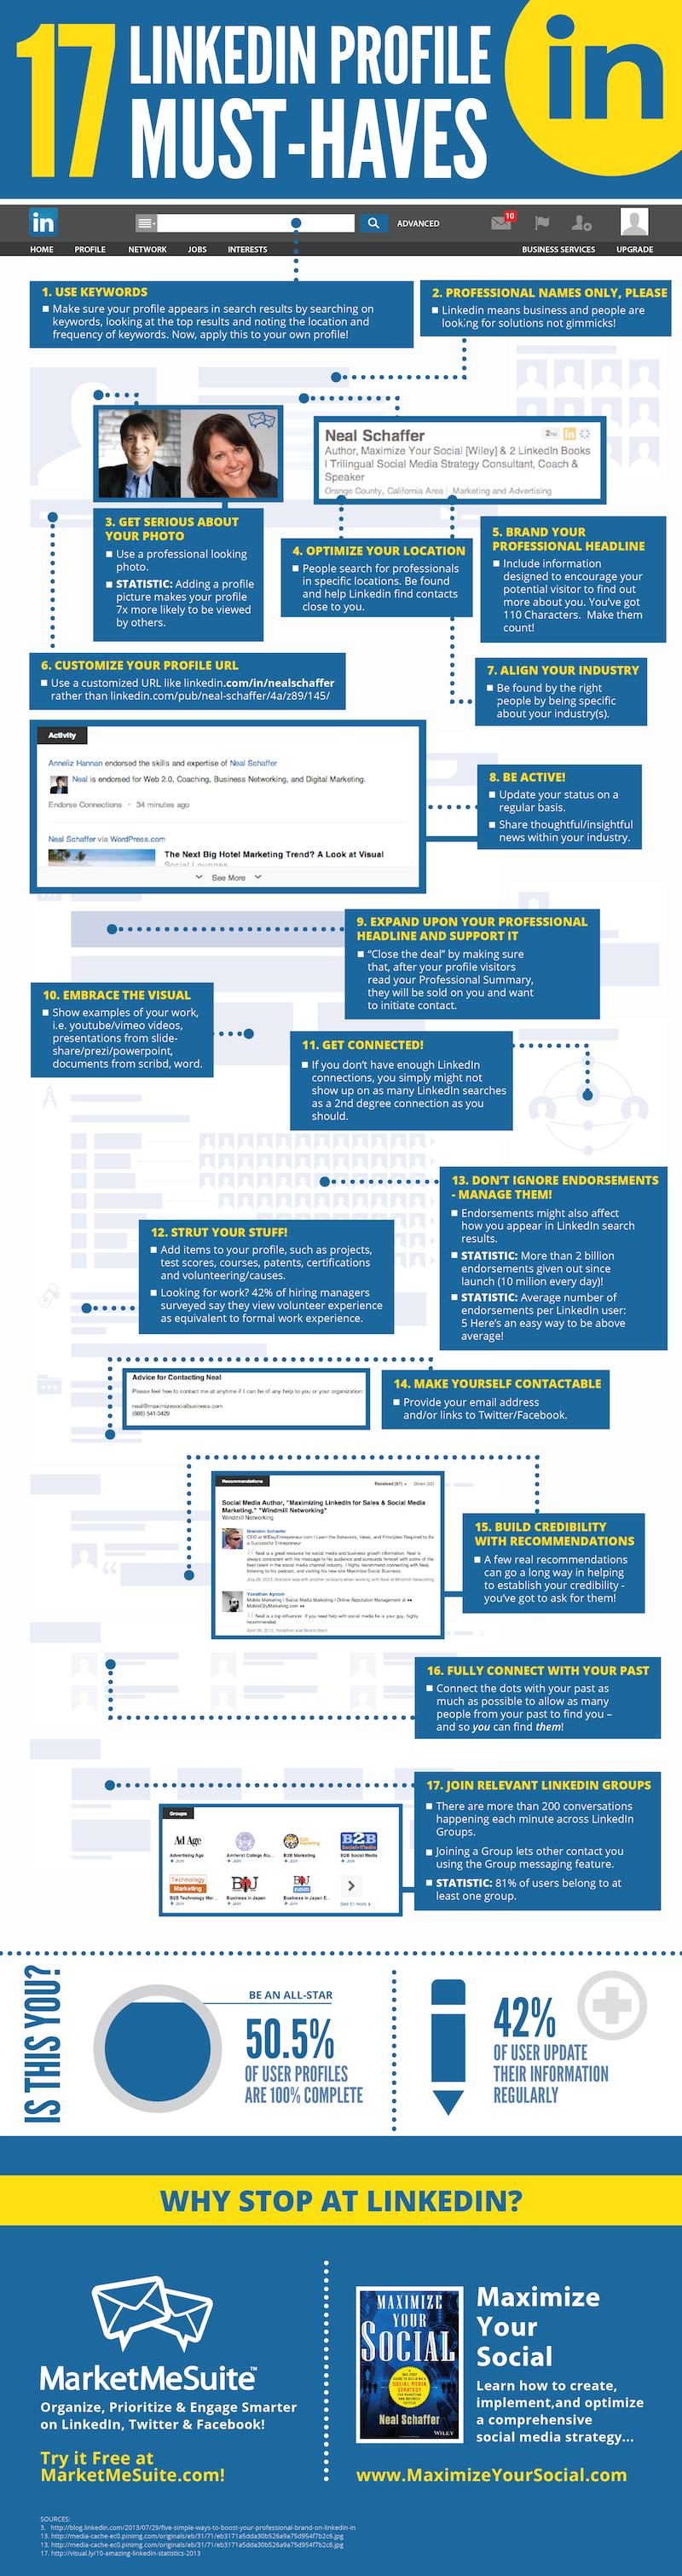 LinkedIn-Ultimate-Profile-Tips-Summary-Infographic-600